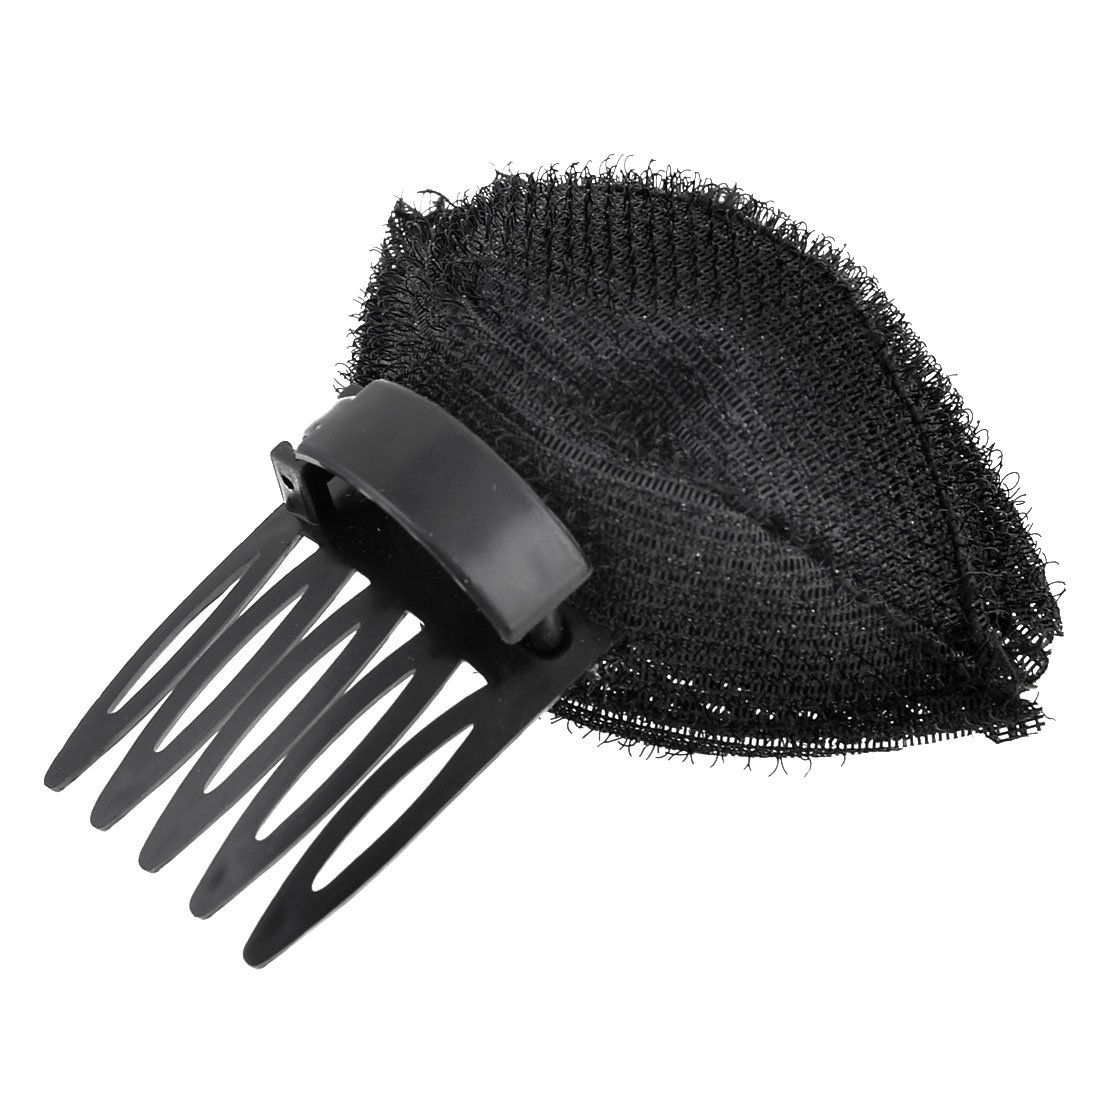 Pompadour Fringe Up Do Insert Tool Elegant Magic Hair Base Forever Love US-SA-AJD-39440